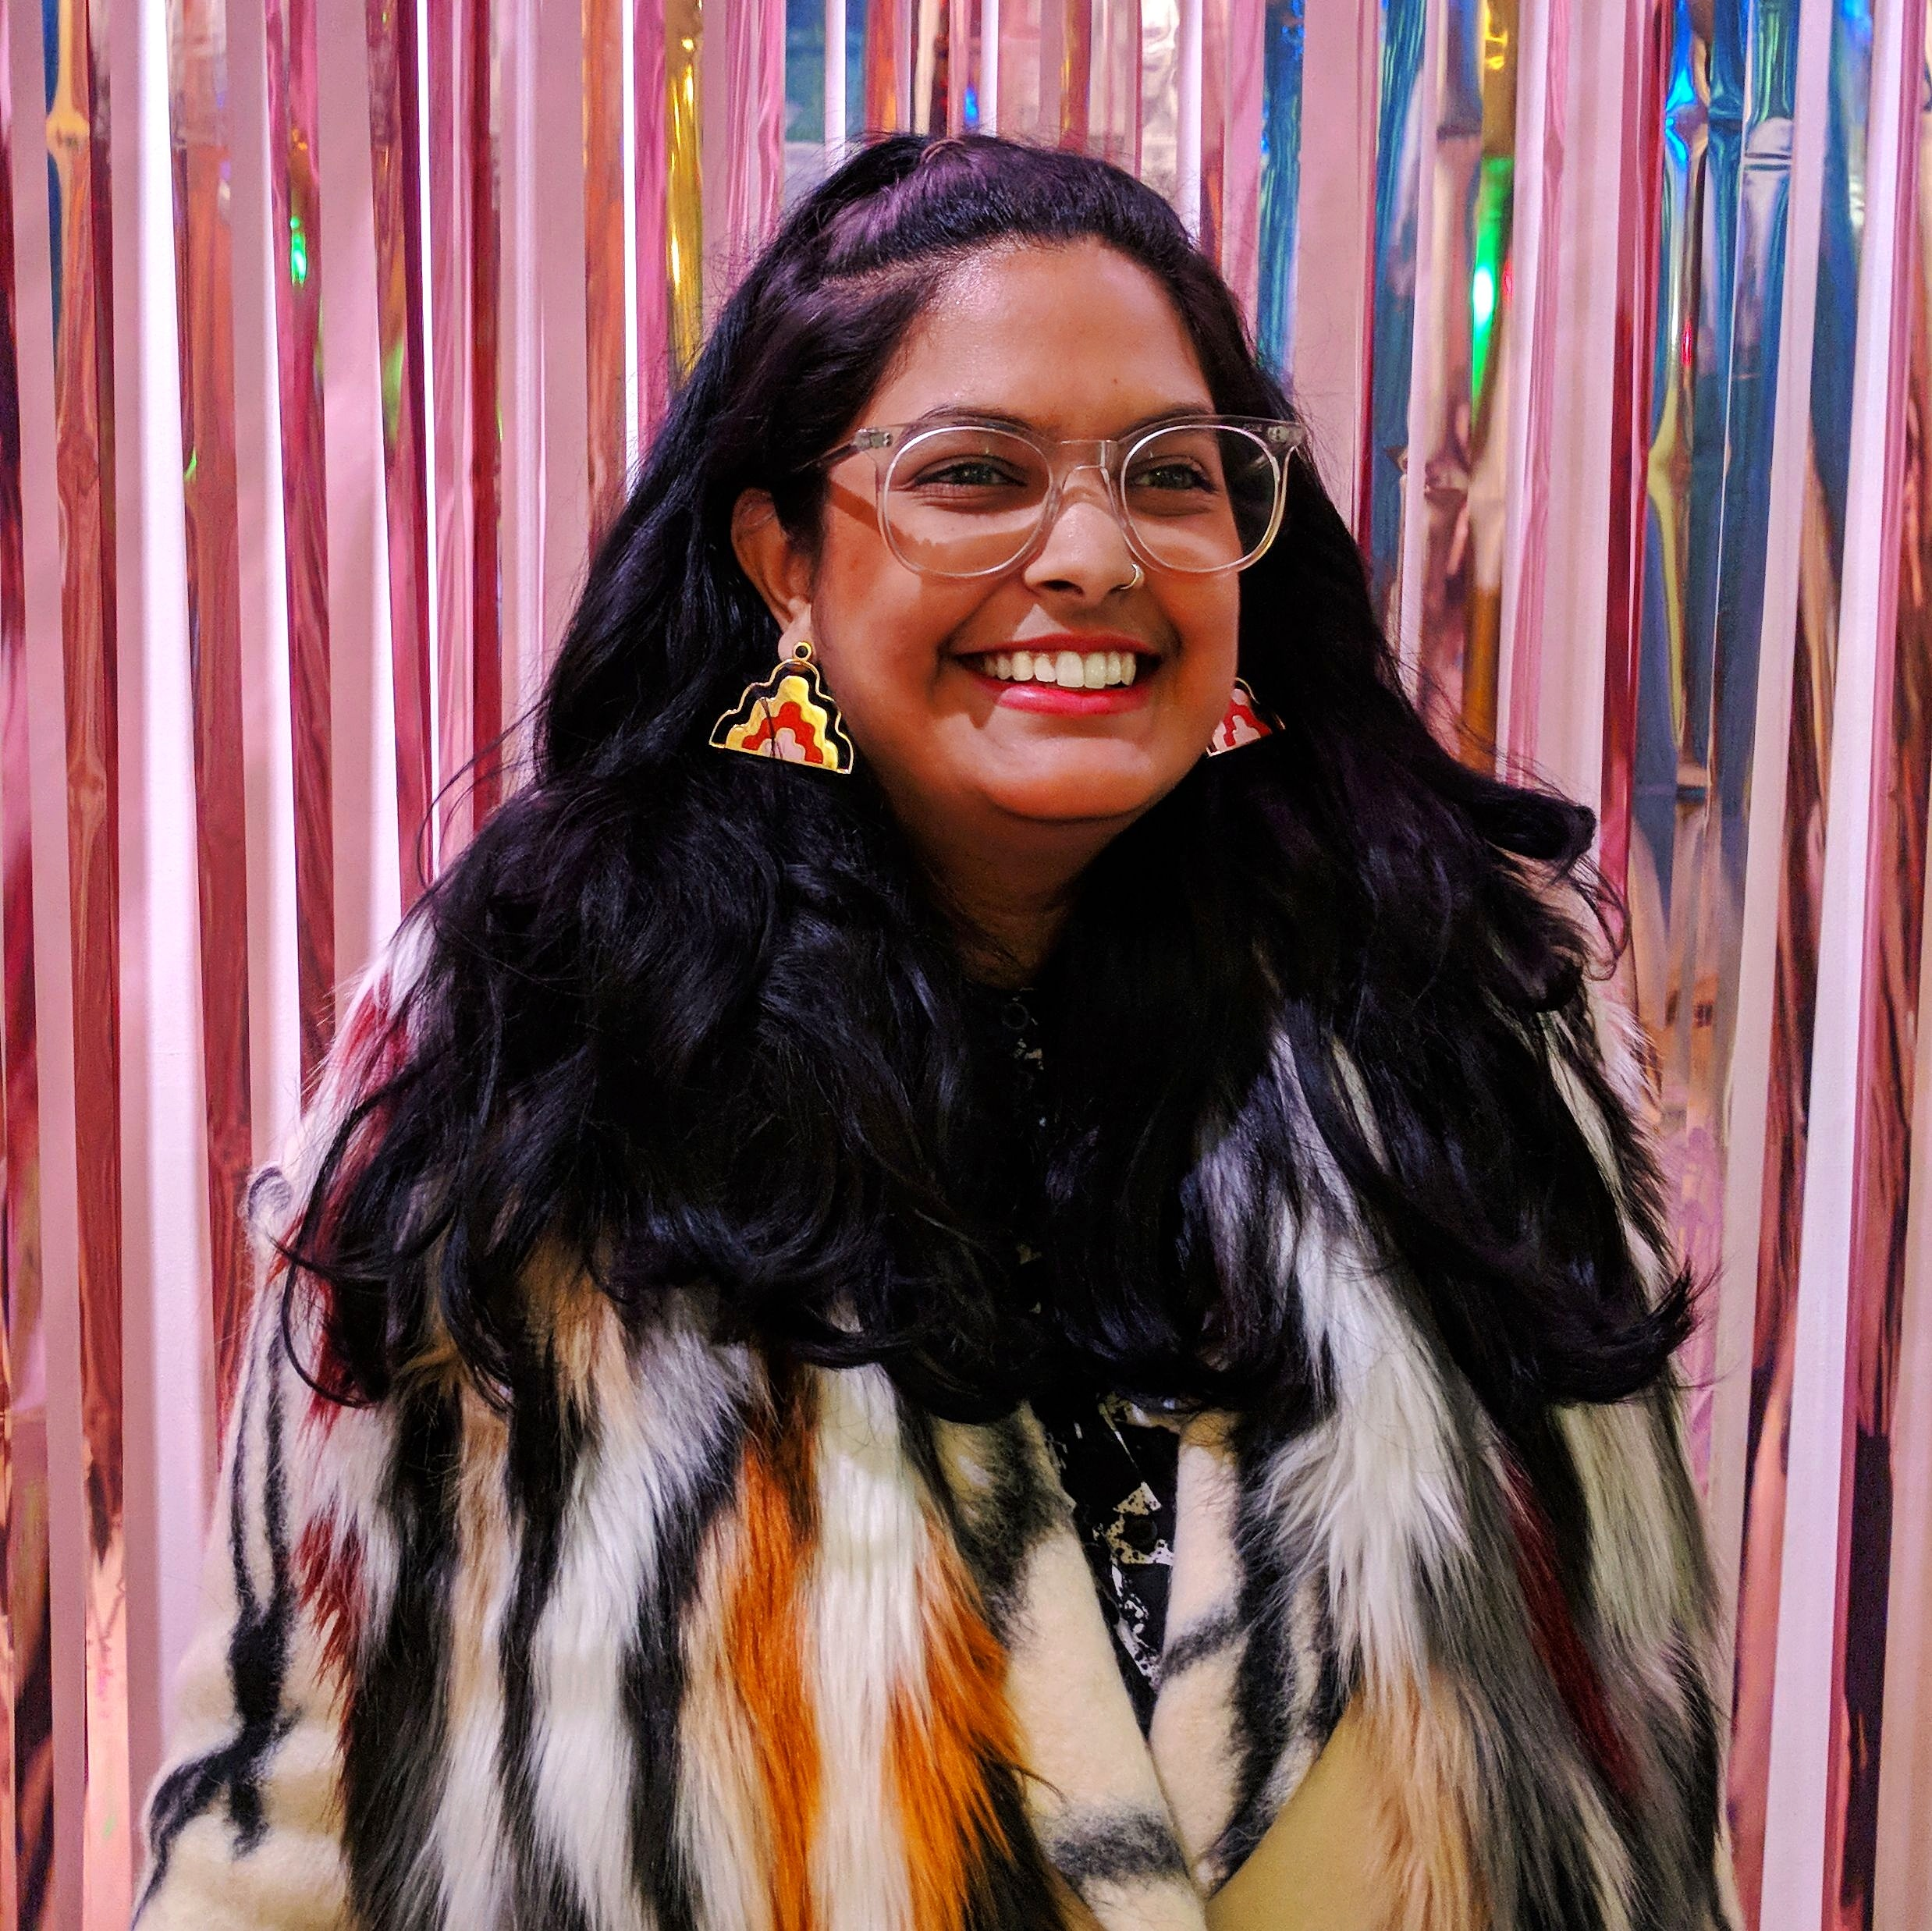 Going For Gold by Rosh Thanki, Milk Tooth LDN earrings at Chloe Lamfords Somerset House exhibition (1).jpg